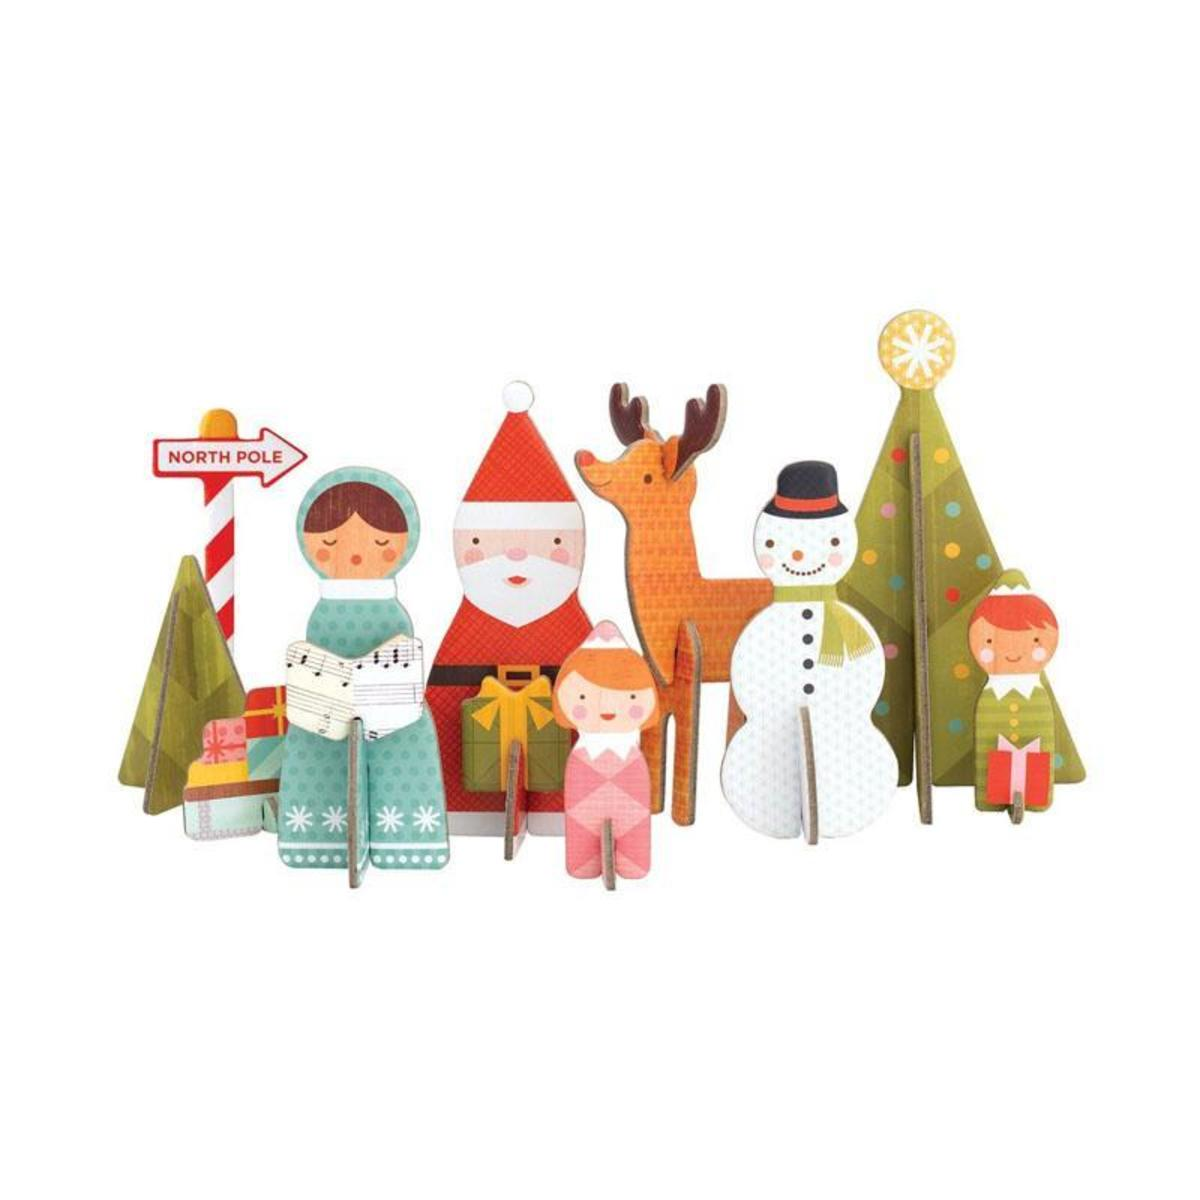 Pop-out & Play 3D Assembly Jigsaw Series (9 models) - Christmas Winter Paradise